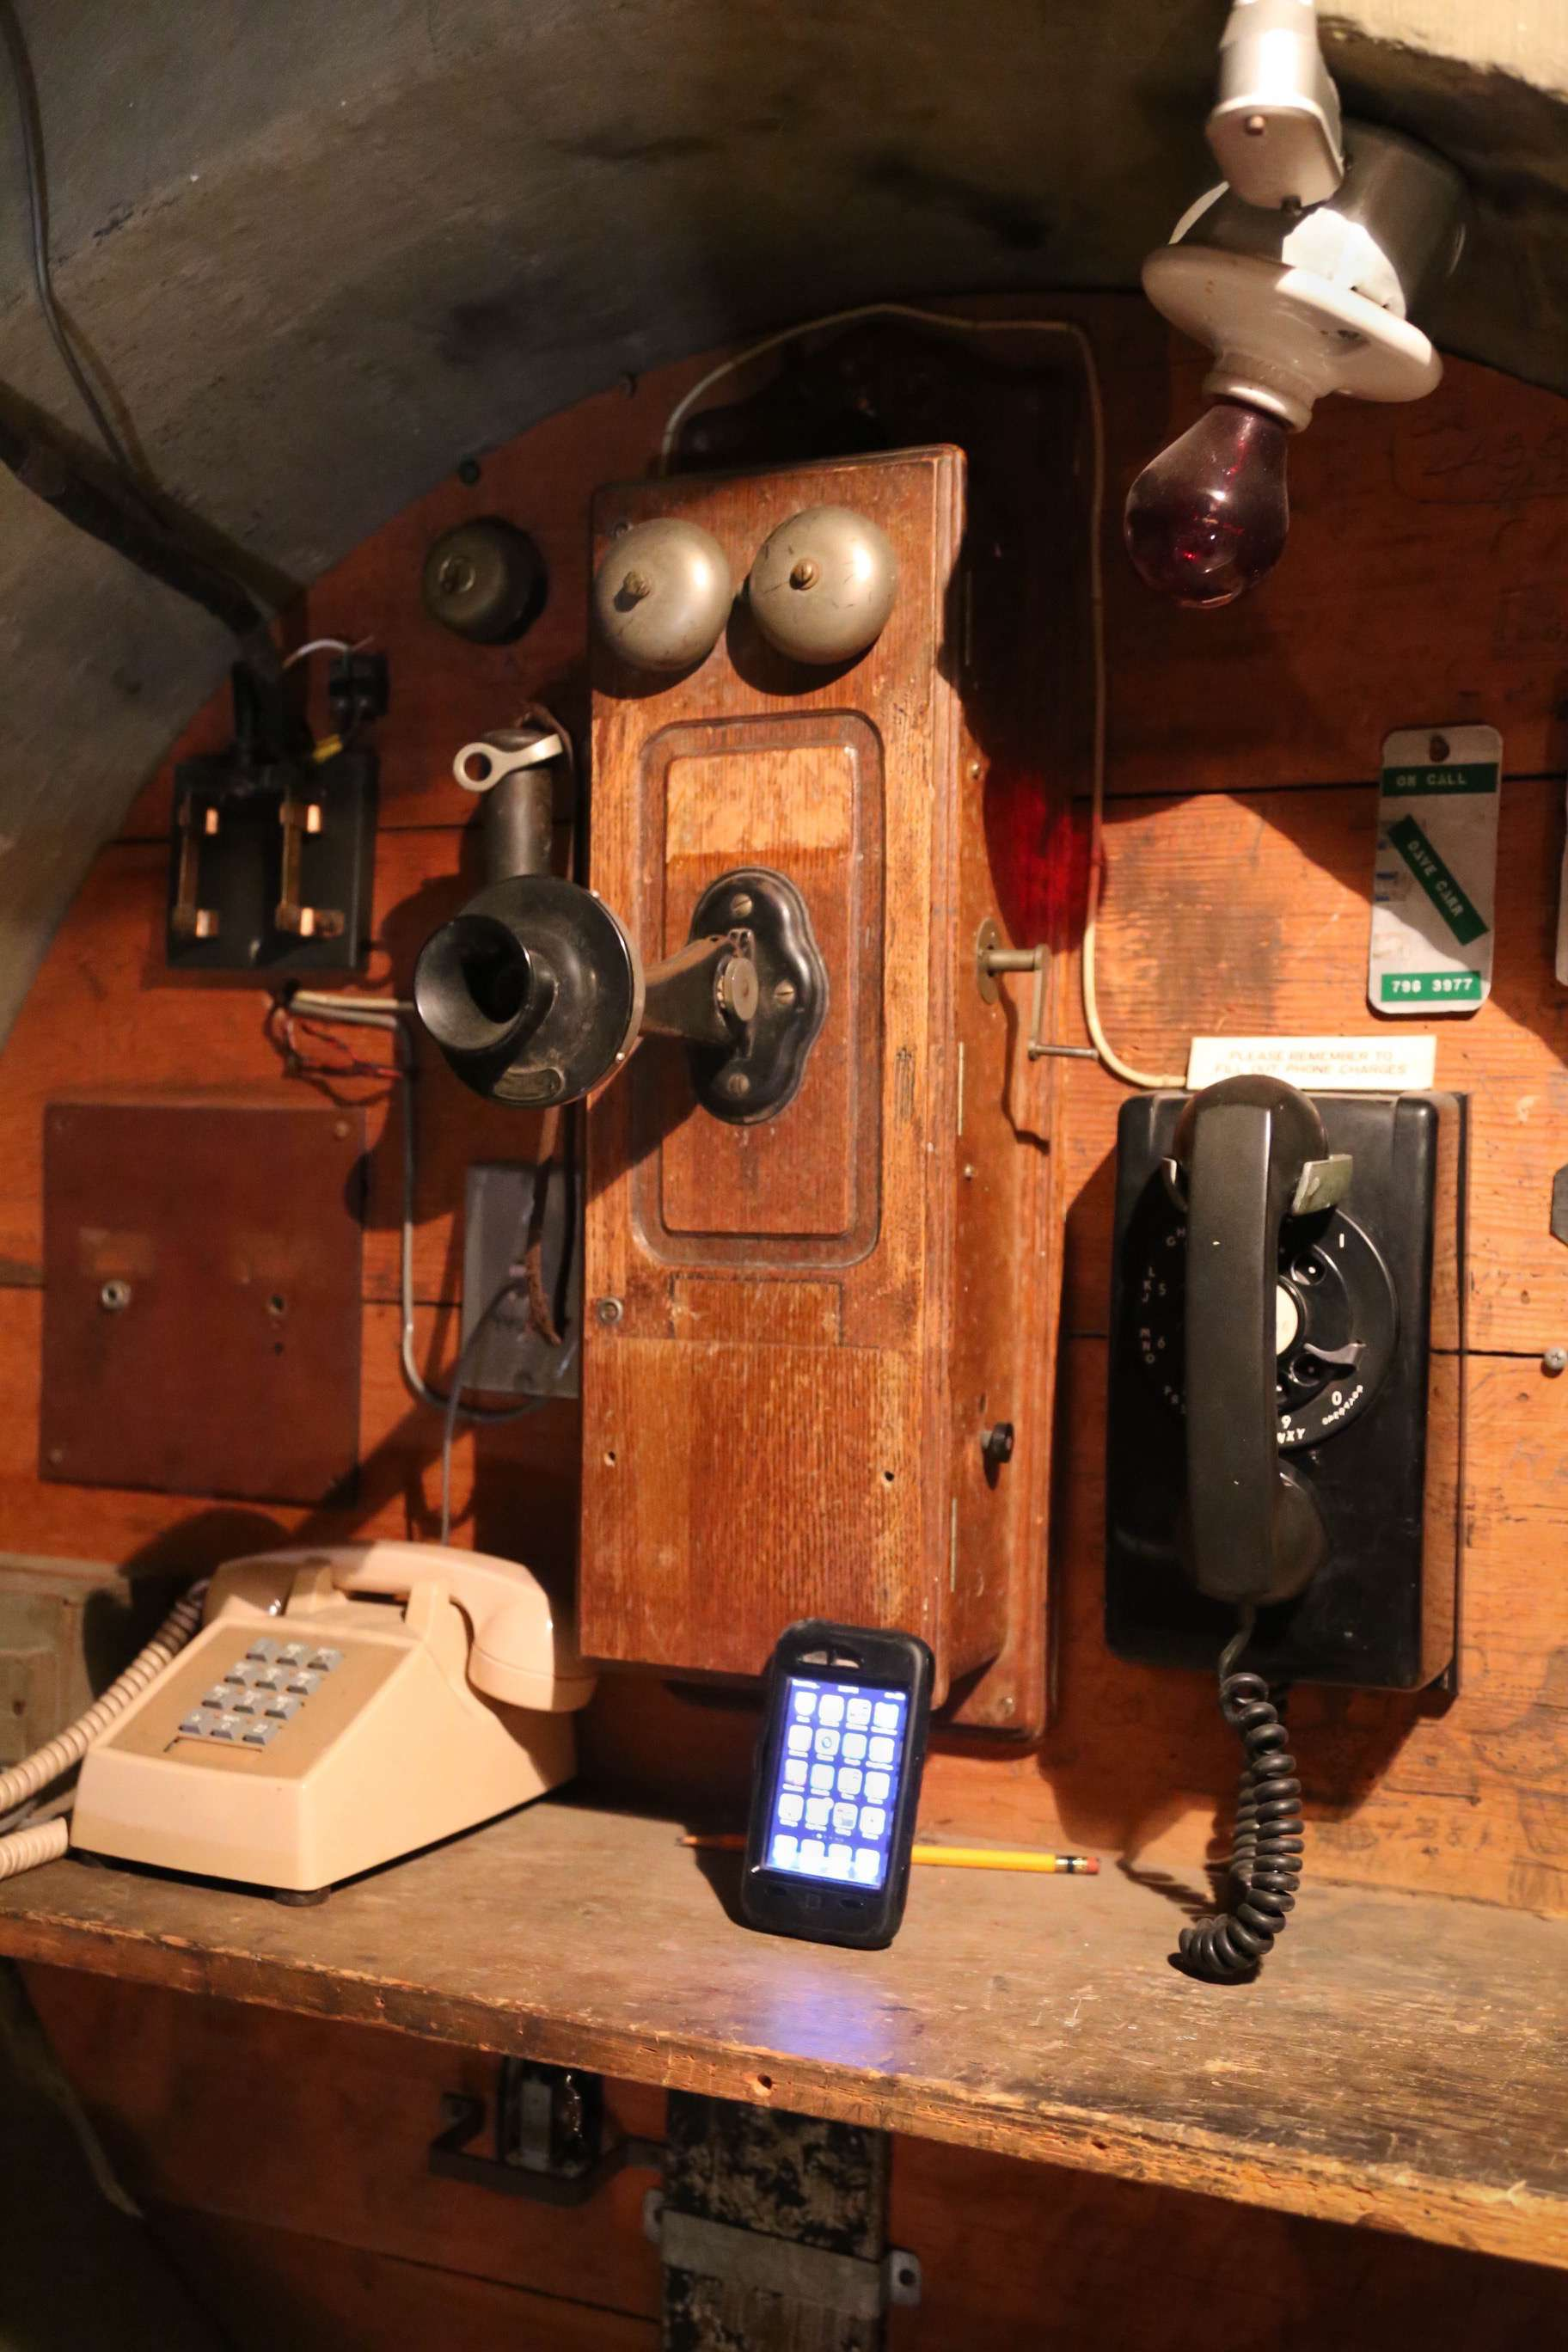 Time marches on, and in a stairwell inside the 100-inch telescope, examples of communications technology can be seen, from the crank-style telephone, that was replaced by the rotary dial, then push button, to today's cellular phones.